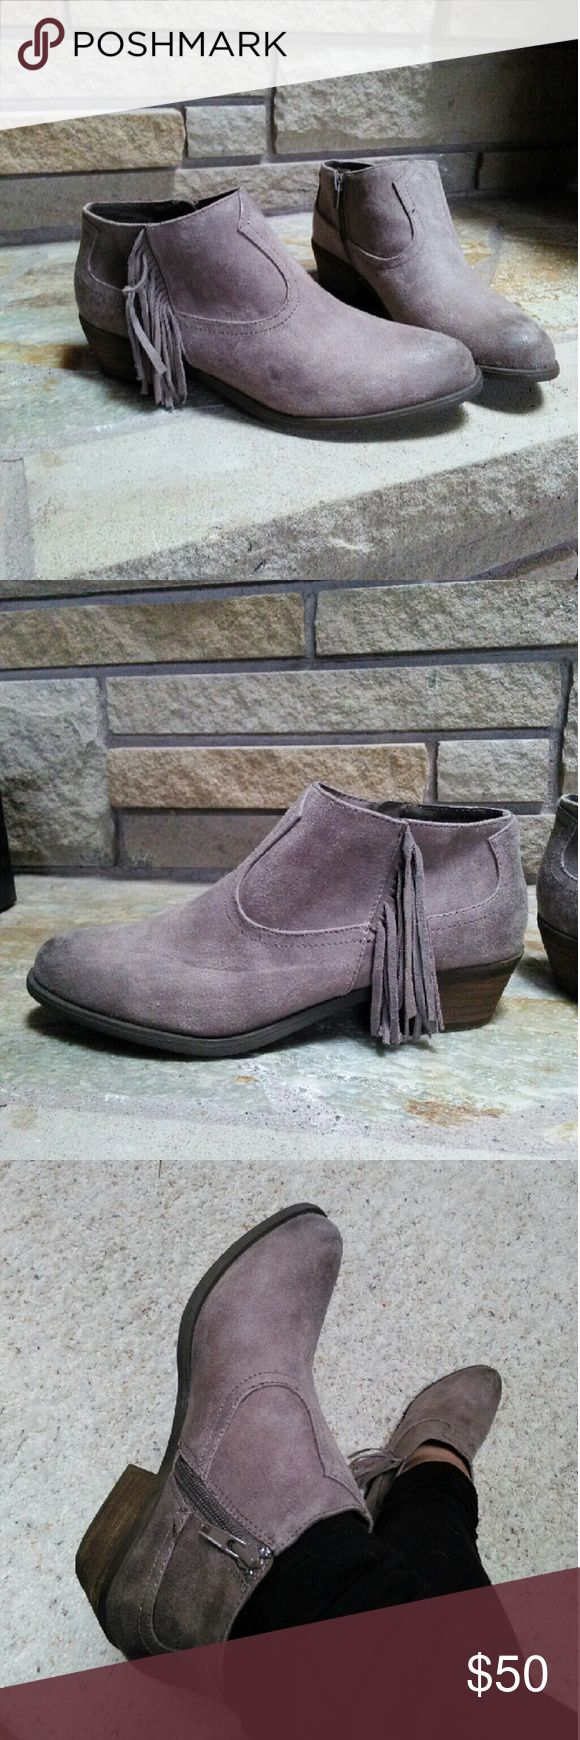 Carlos Santana taupe grey fringe ankle boots New Carlos by Carlos Santana Loretta grey taupe frunge ankle boots. Low heel oil rub distress with side fringe. Such a cute and cool bootie! New and unworn. Carlos Santana Shoes Ankle Boots & Booties